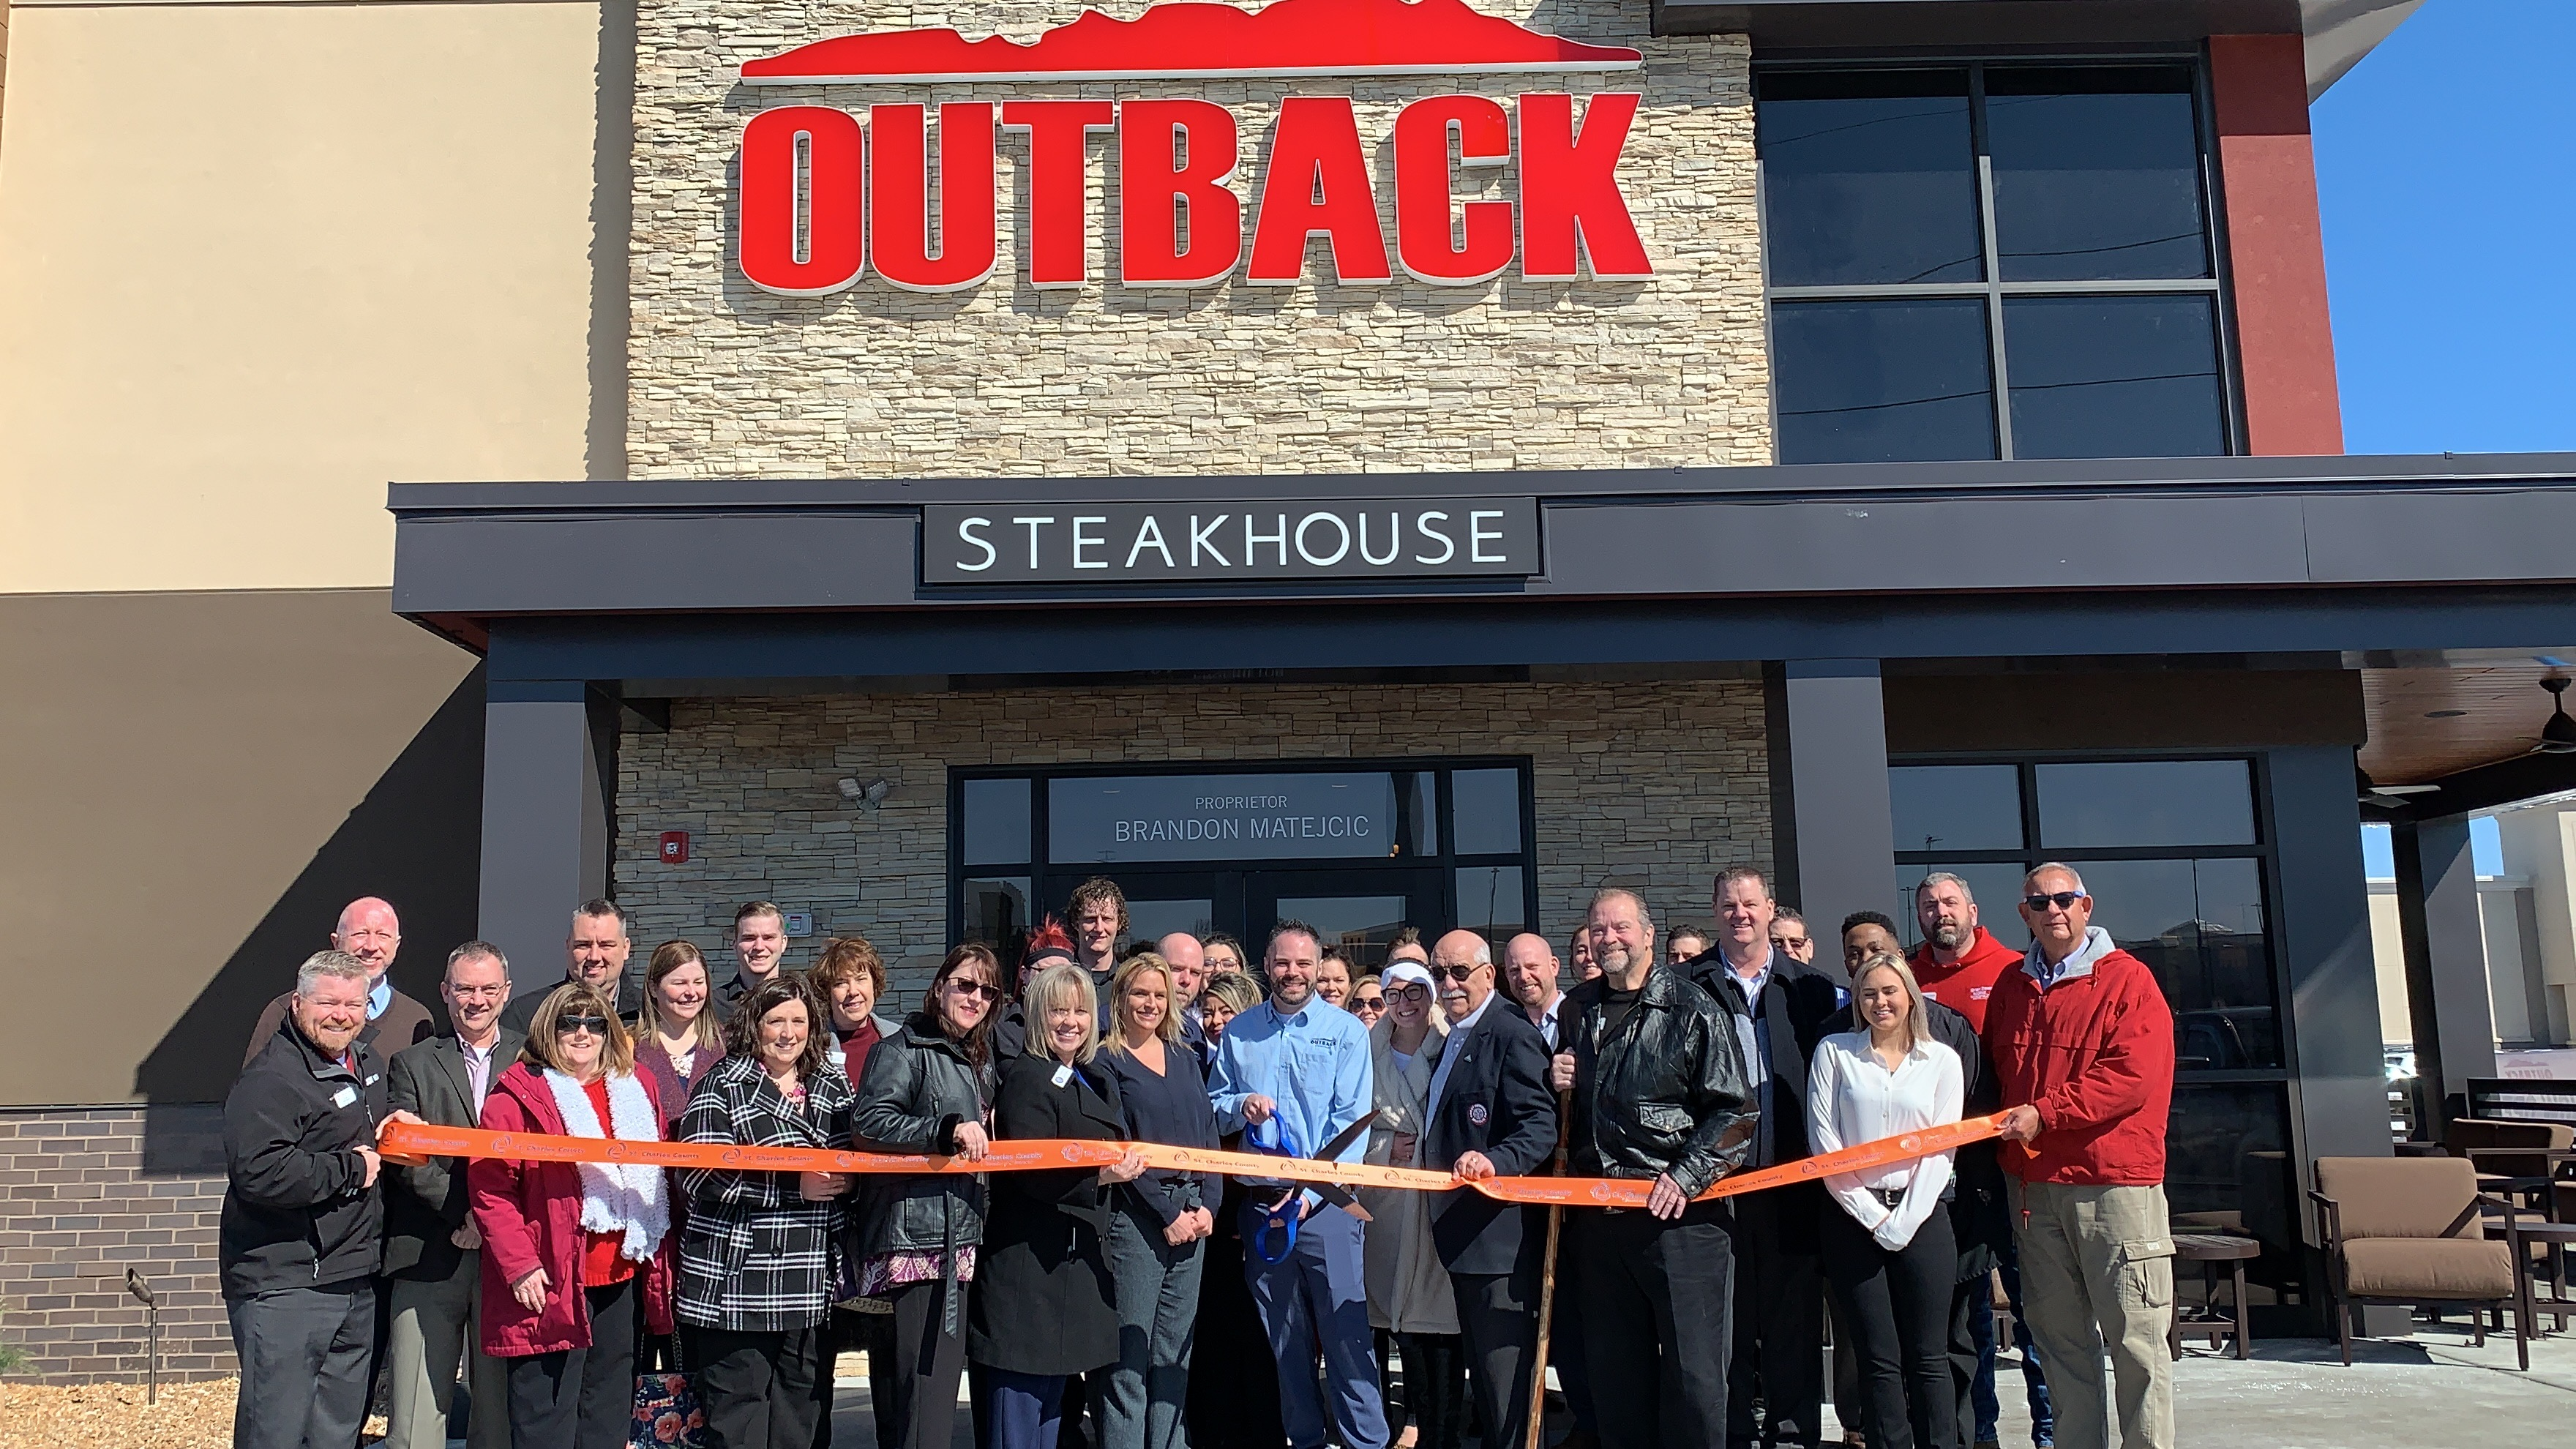 Image for Outback Steakhouse Celebrates Grand Opening with Ribbon Cutting